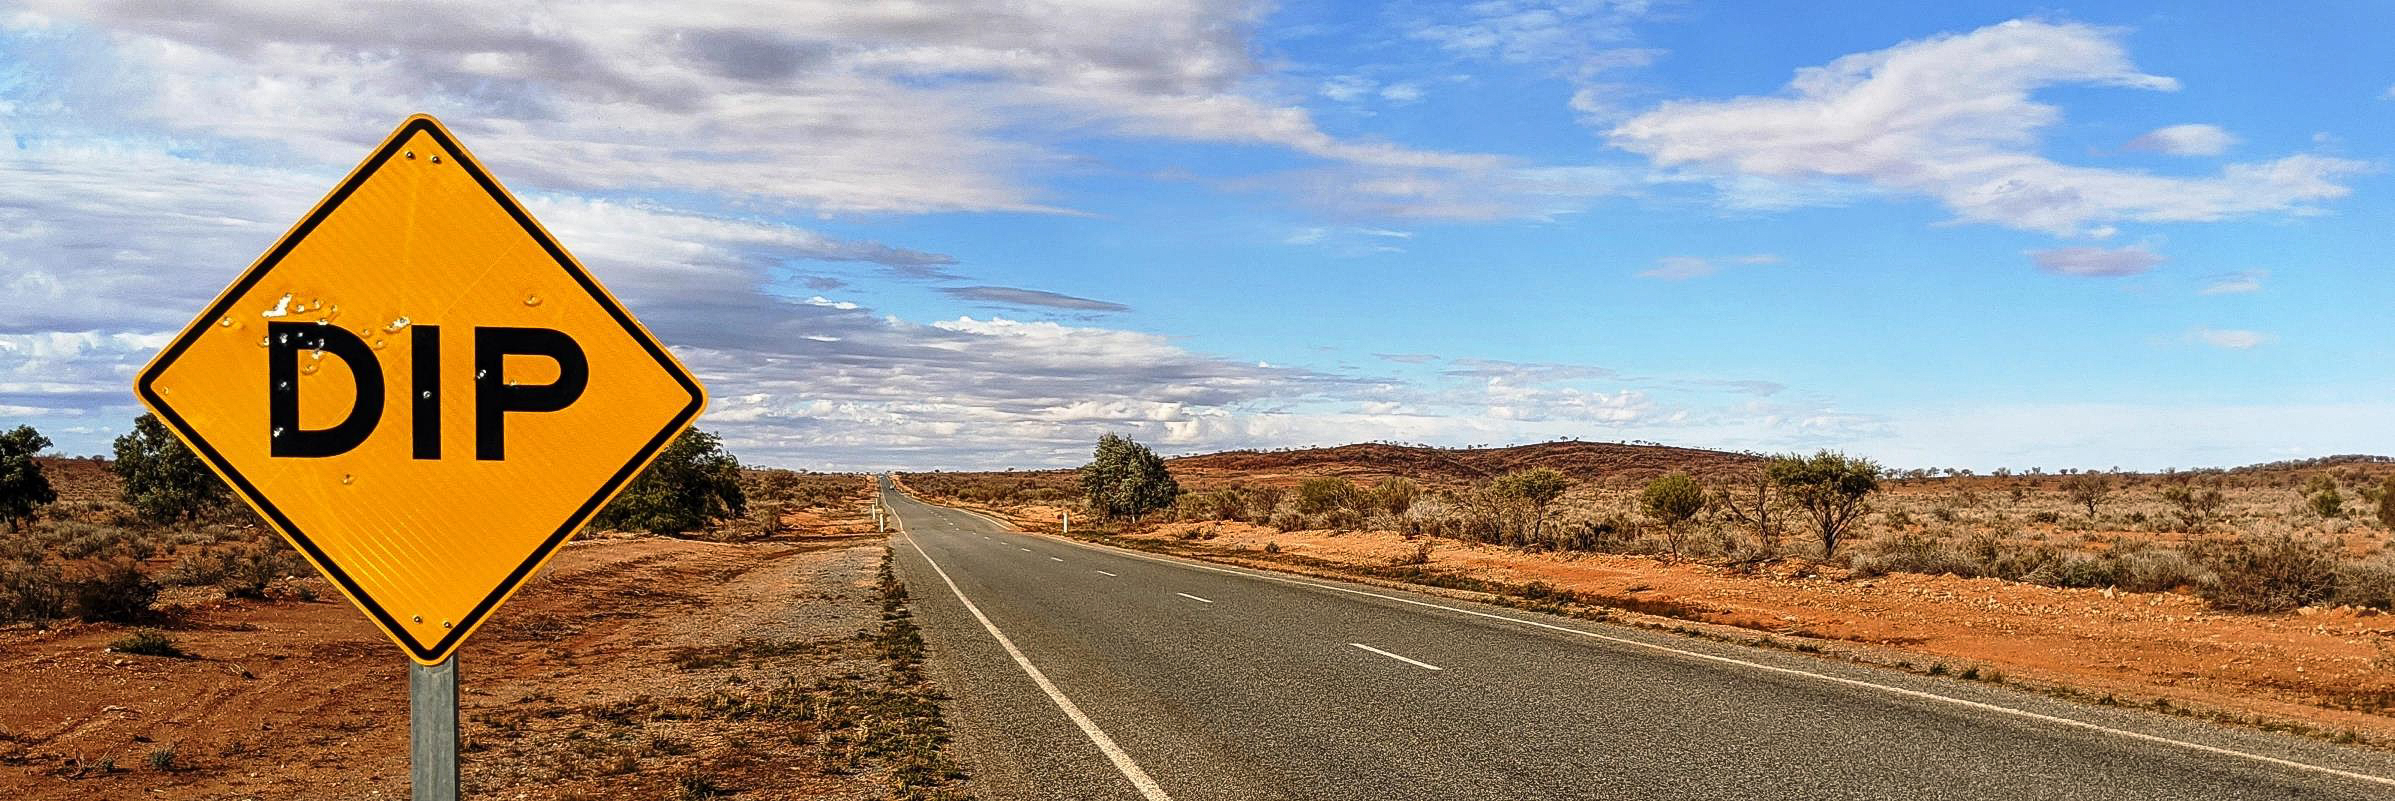 outback new south wales